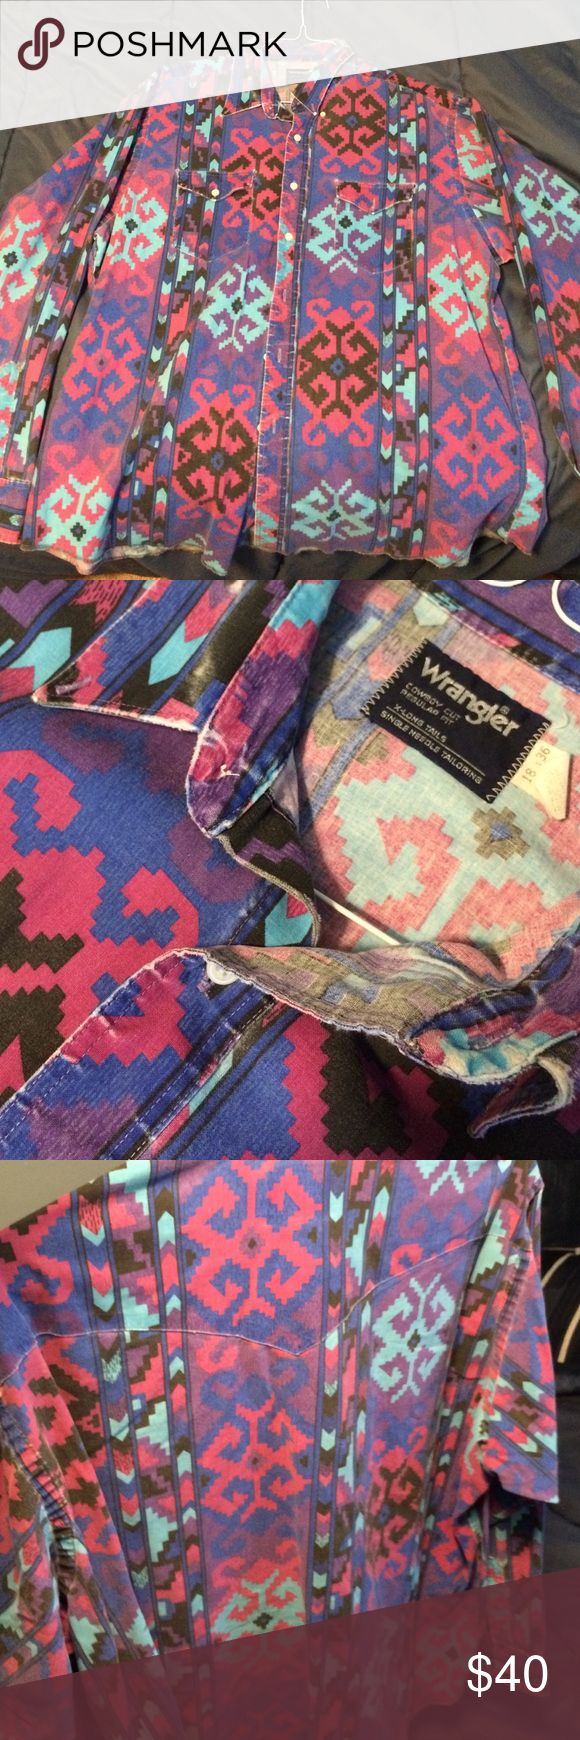 Wrangler button up tribal shirt Very nice vintage wrangler button down. Snowflake tribal print all over. Don't sleep!  Wrangler Tops Button Down Shirts